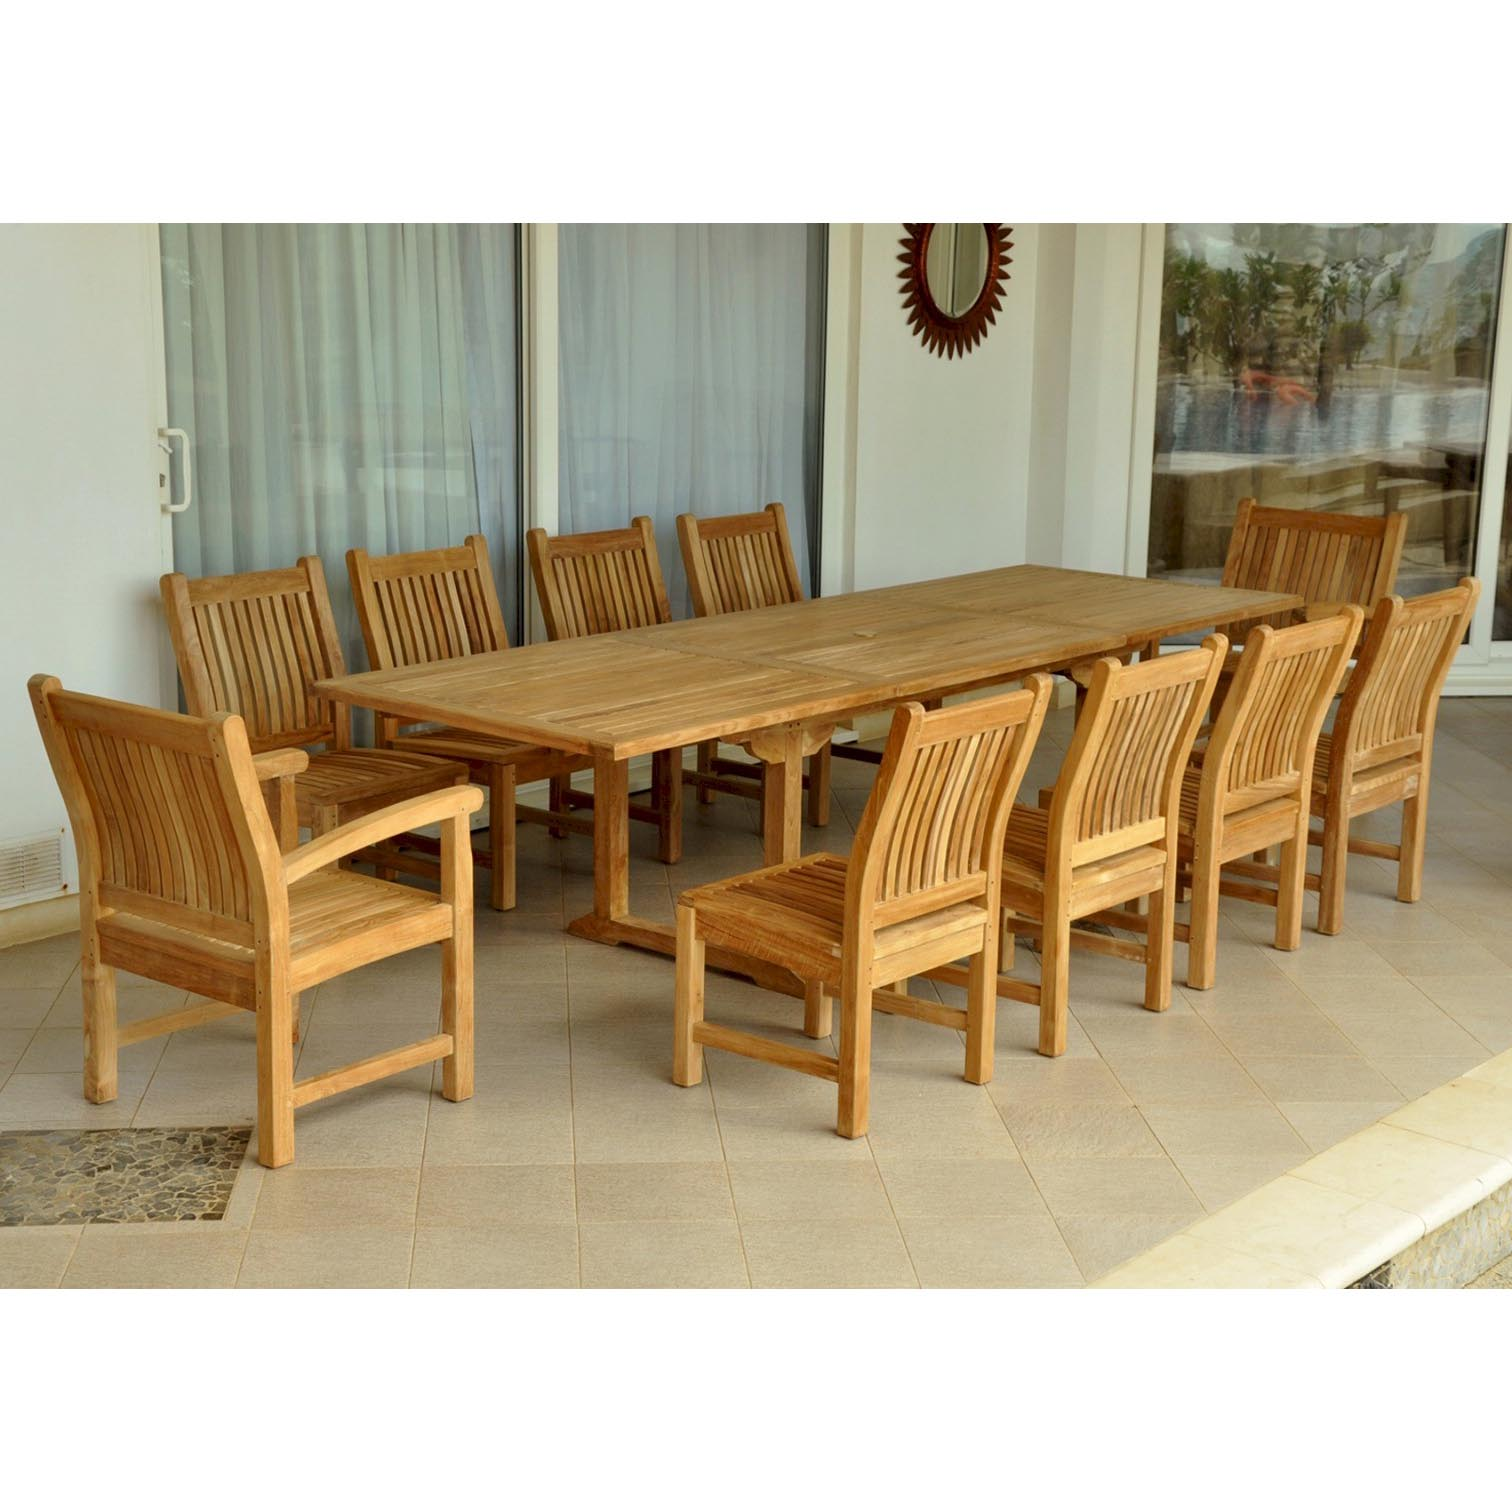 Purchase Teak Bahama Table Sahara Armchairs Side Chairs Product Photo